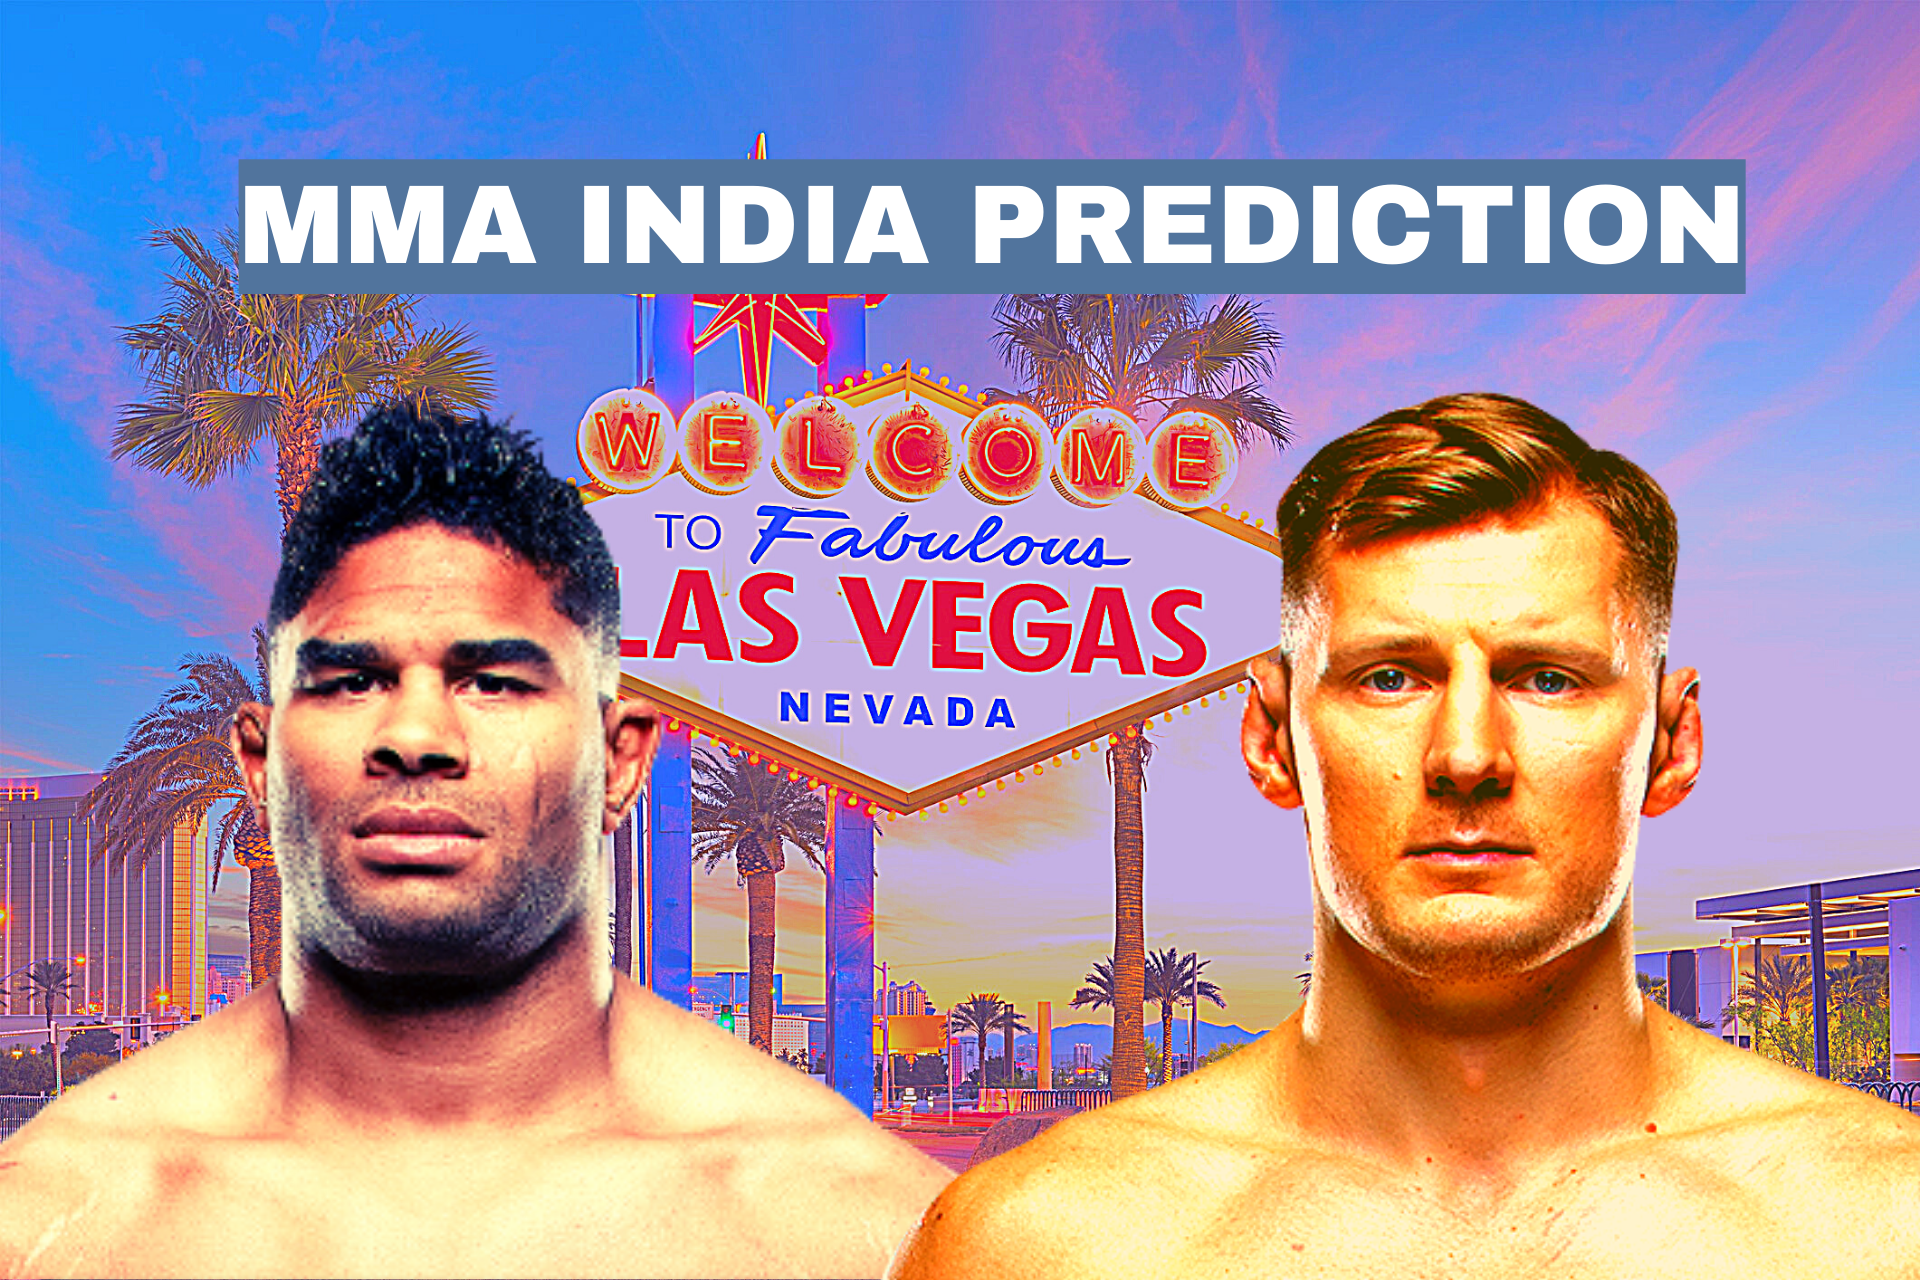 UFC Vegas 18: Overeem vs Volkov betting odds and prediction - Overeem